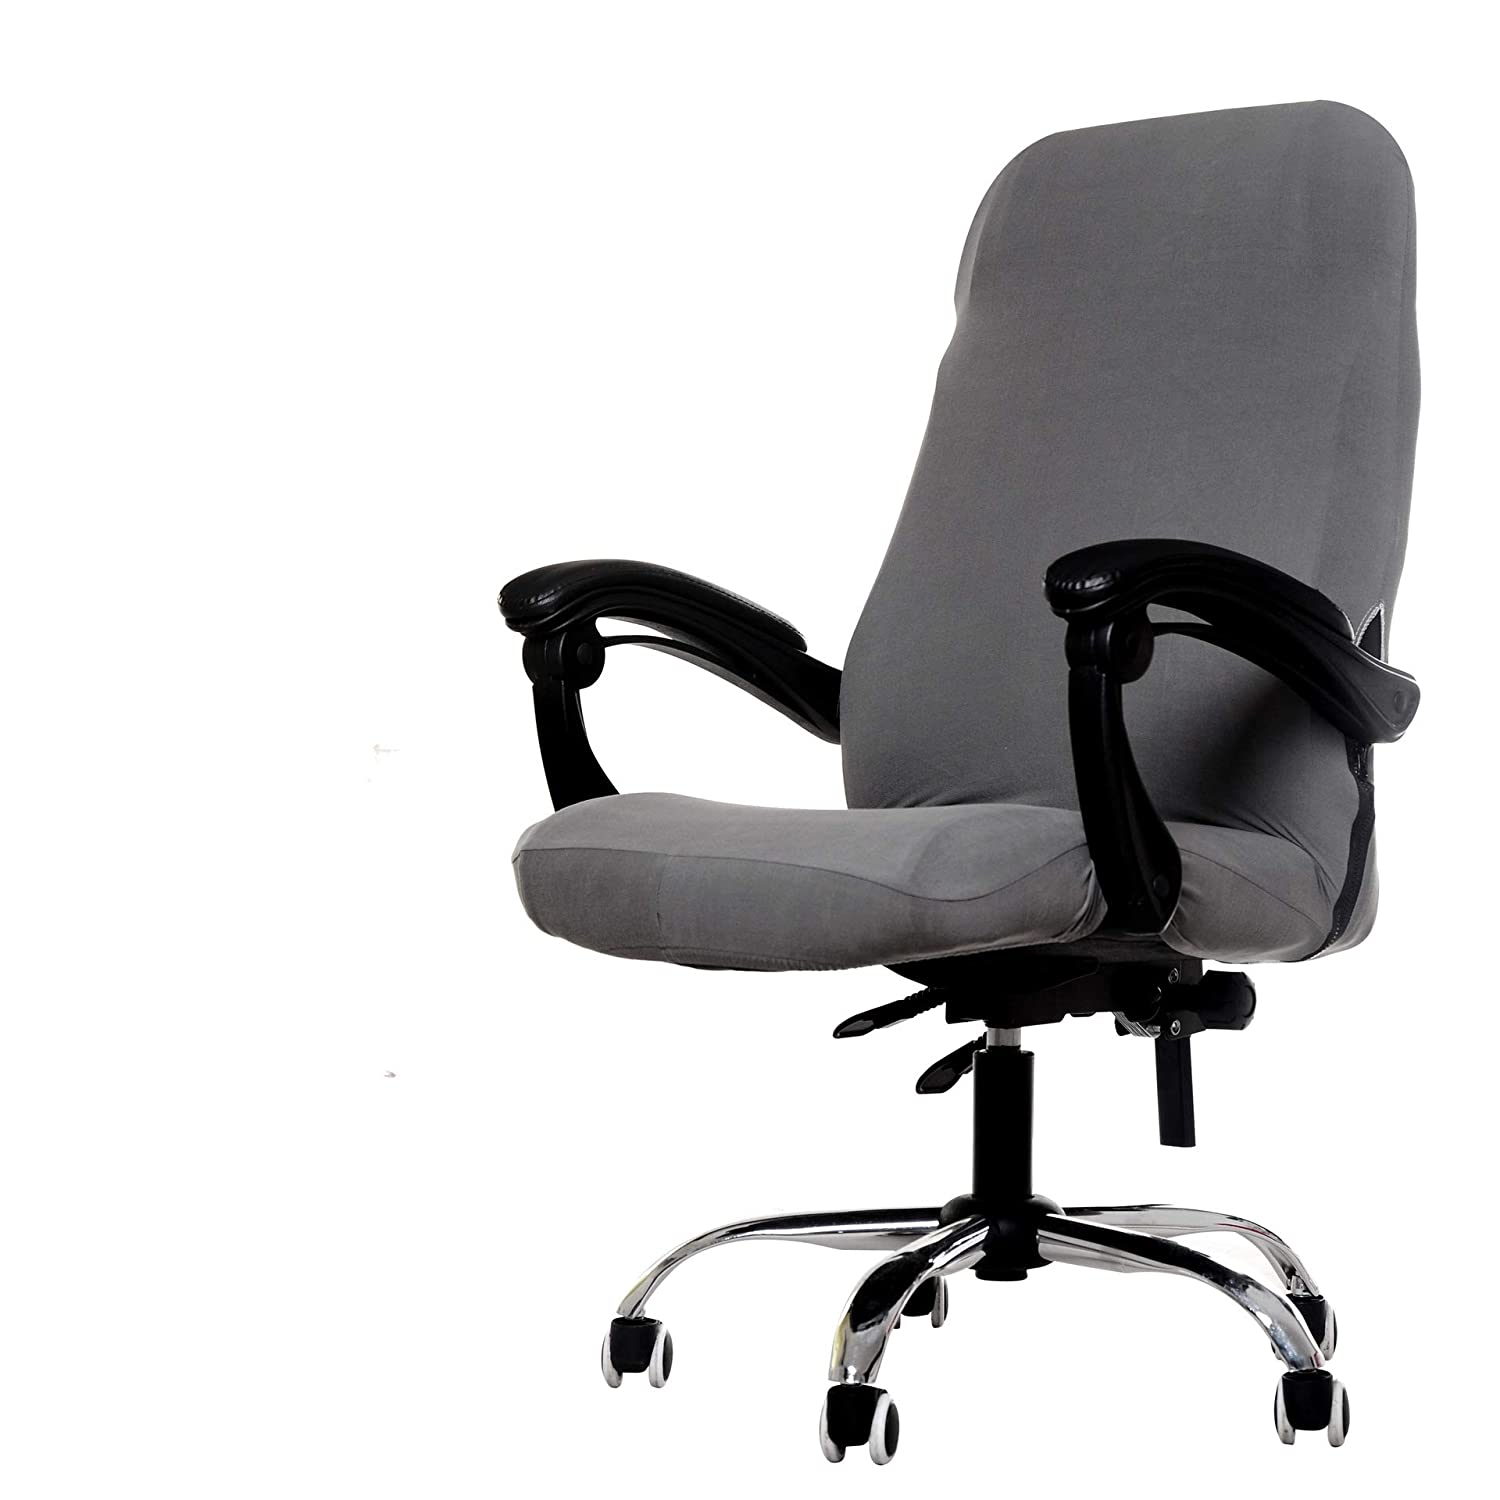 Deisy Dee Computer Office Chair Covers for Stretch Rotating Mid Back Chair Slipcovers Cover ONLY Chair Covers C162 (Grey)